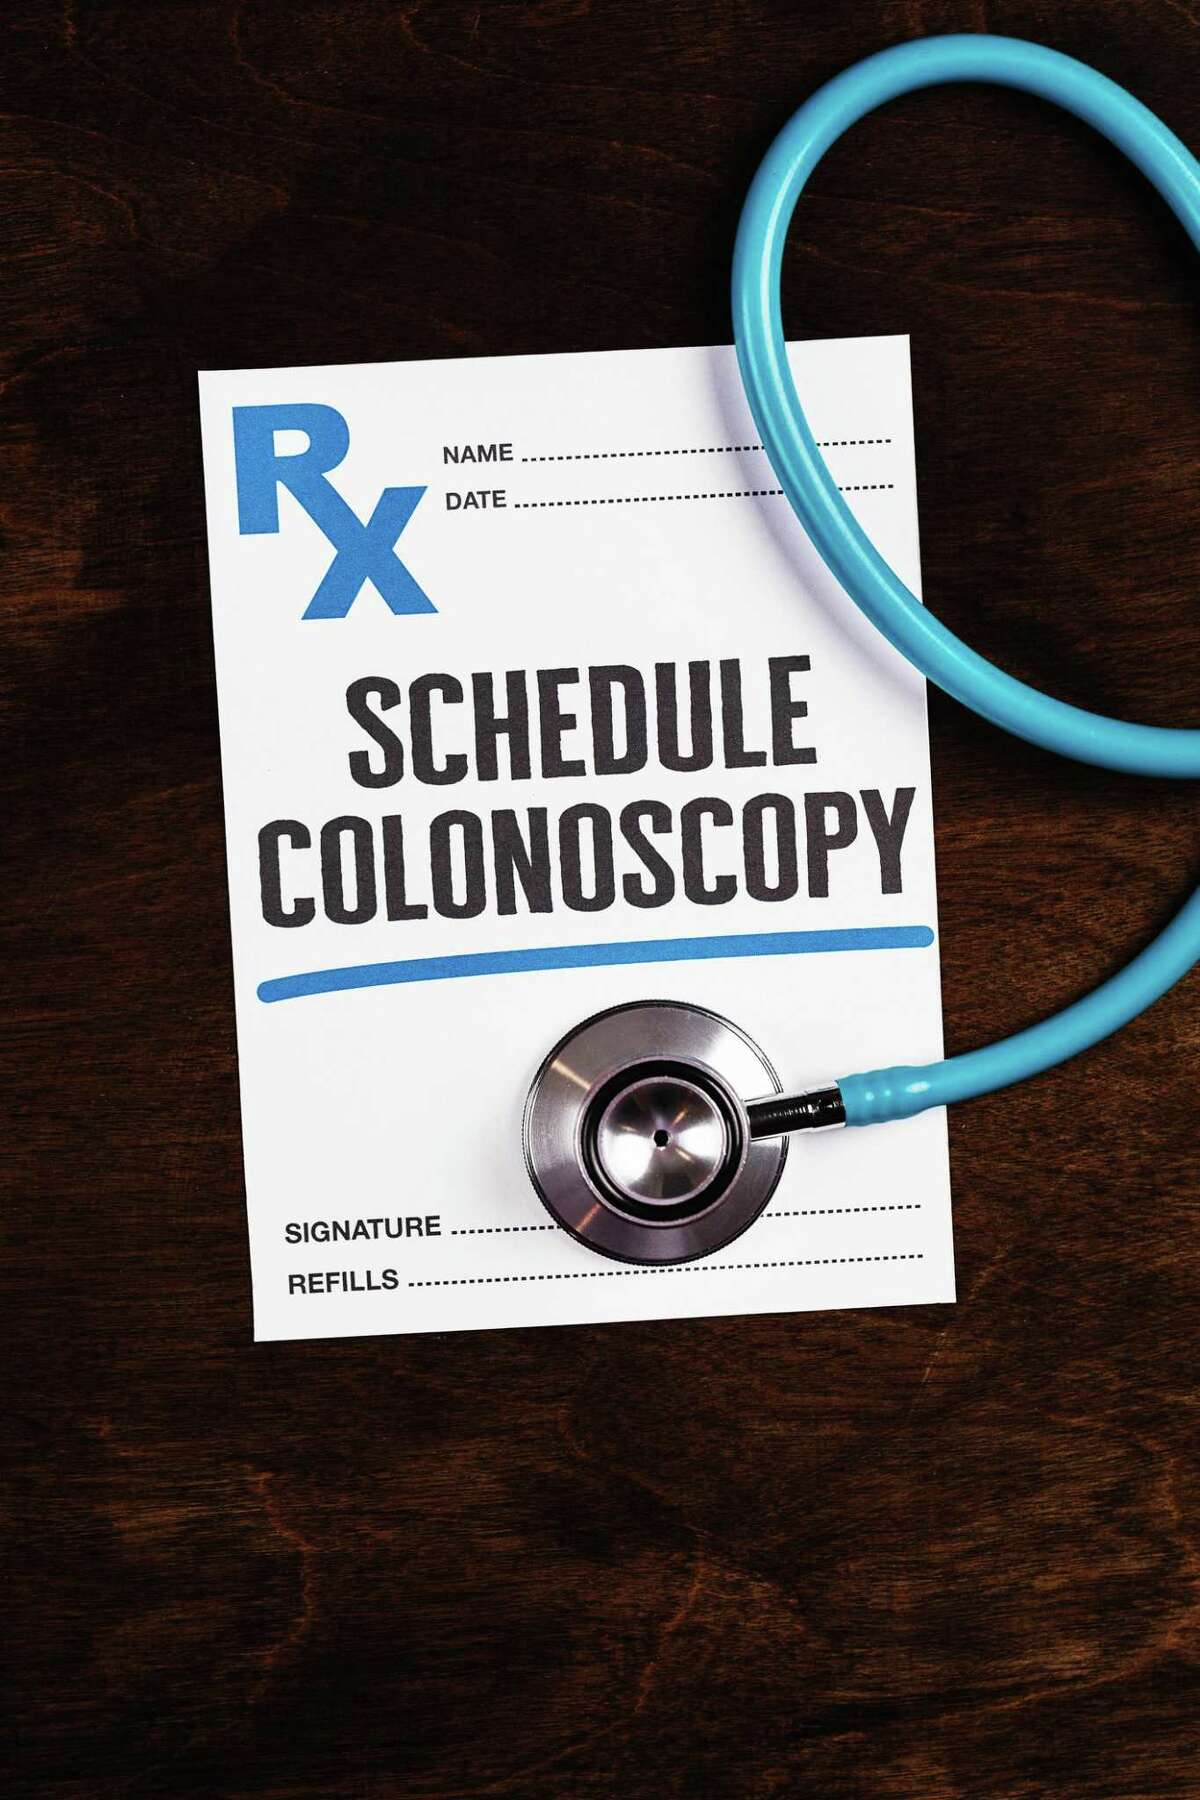 No, this is not a photo from Cary's beautiful colonoscopy, but it is a not-so imaginative reminder to schedule one.